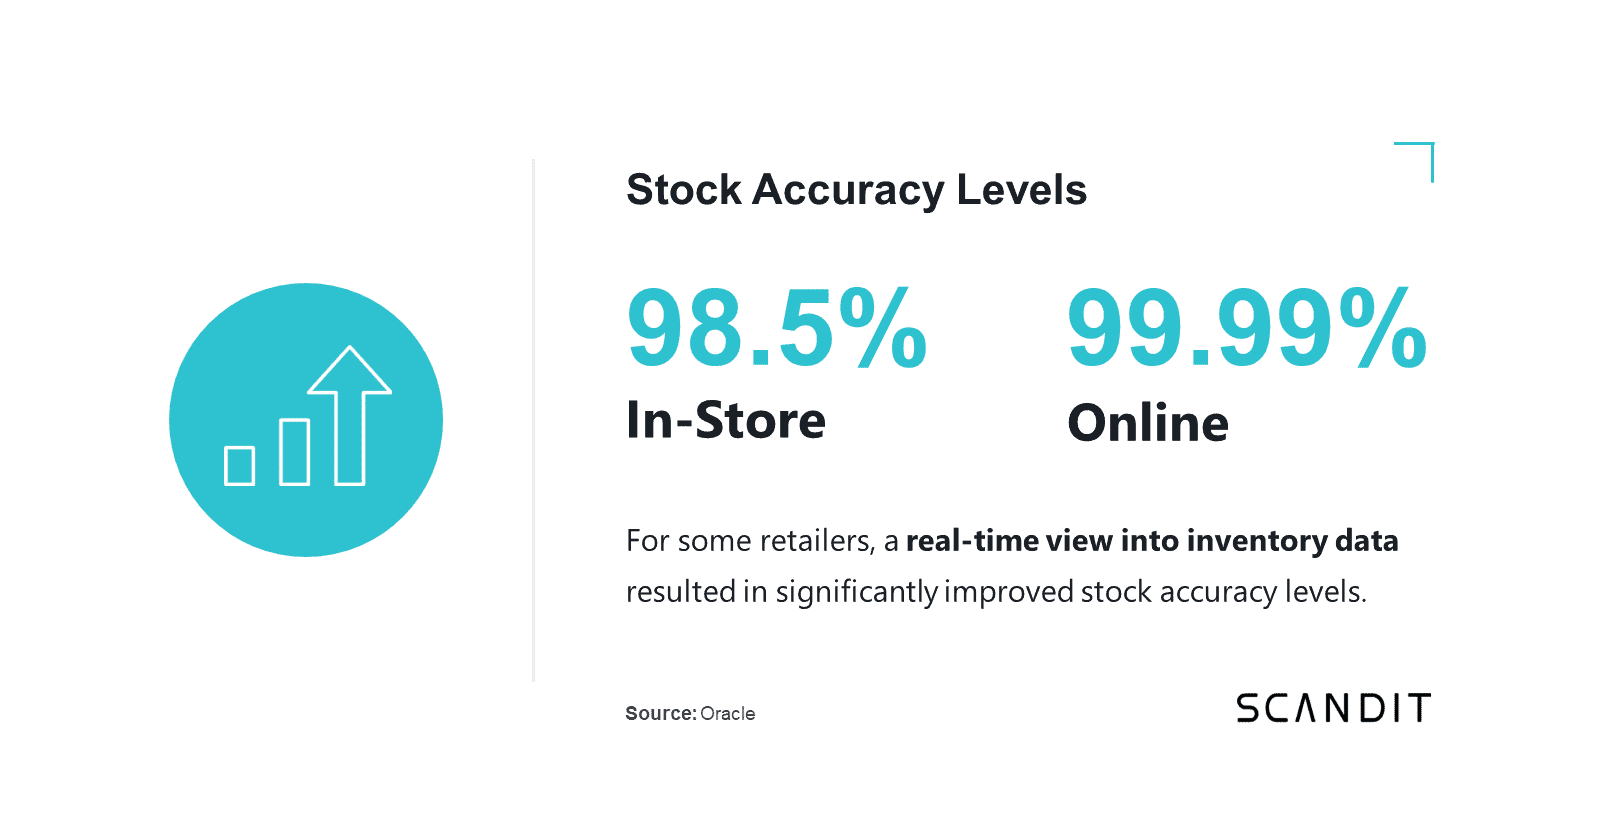 For some retailers, a real-time view into inventory data resulted in significantly improved stock accuracy levels